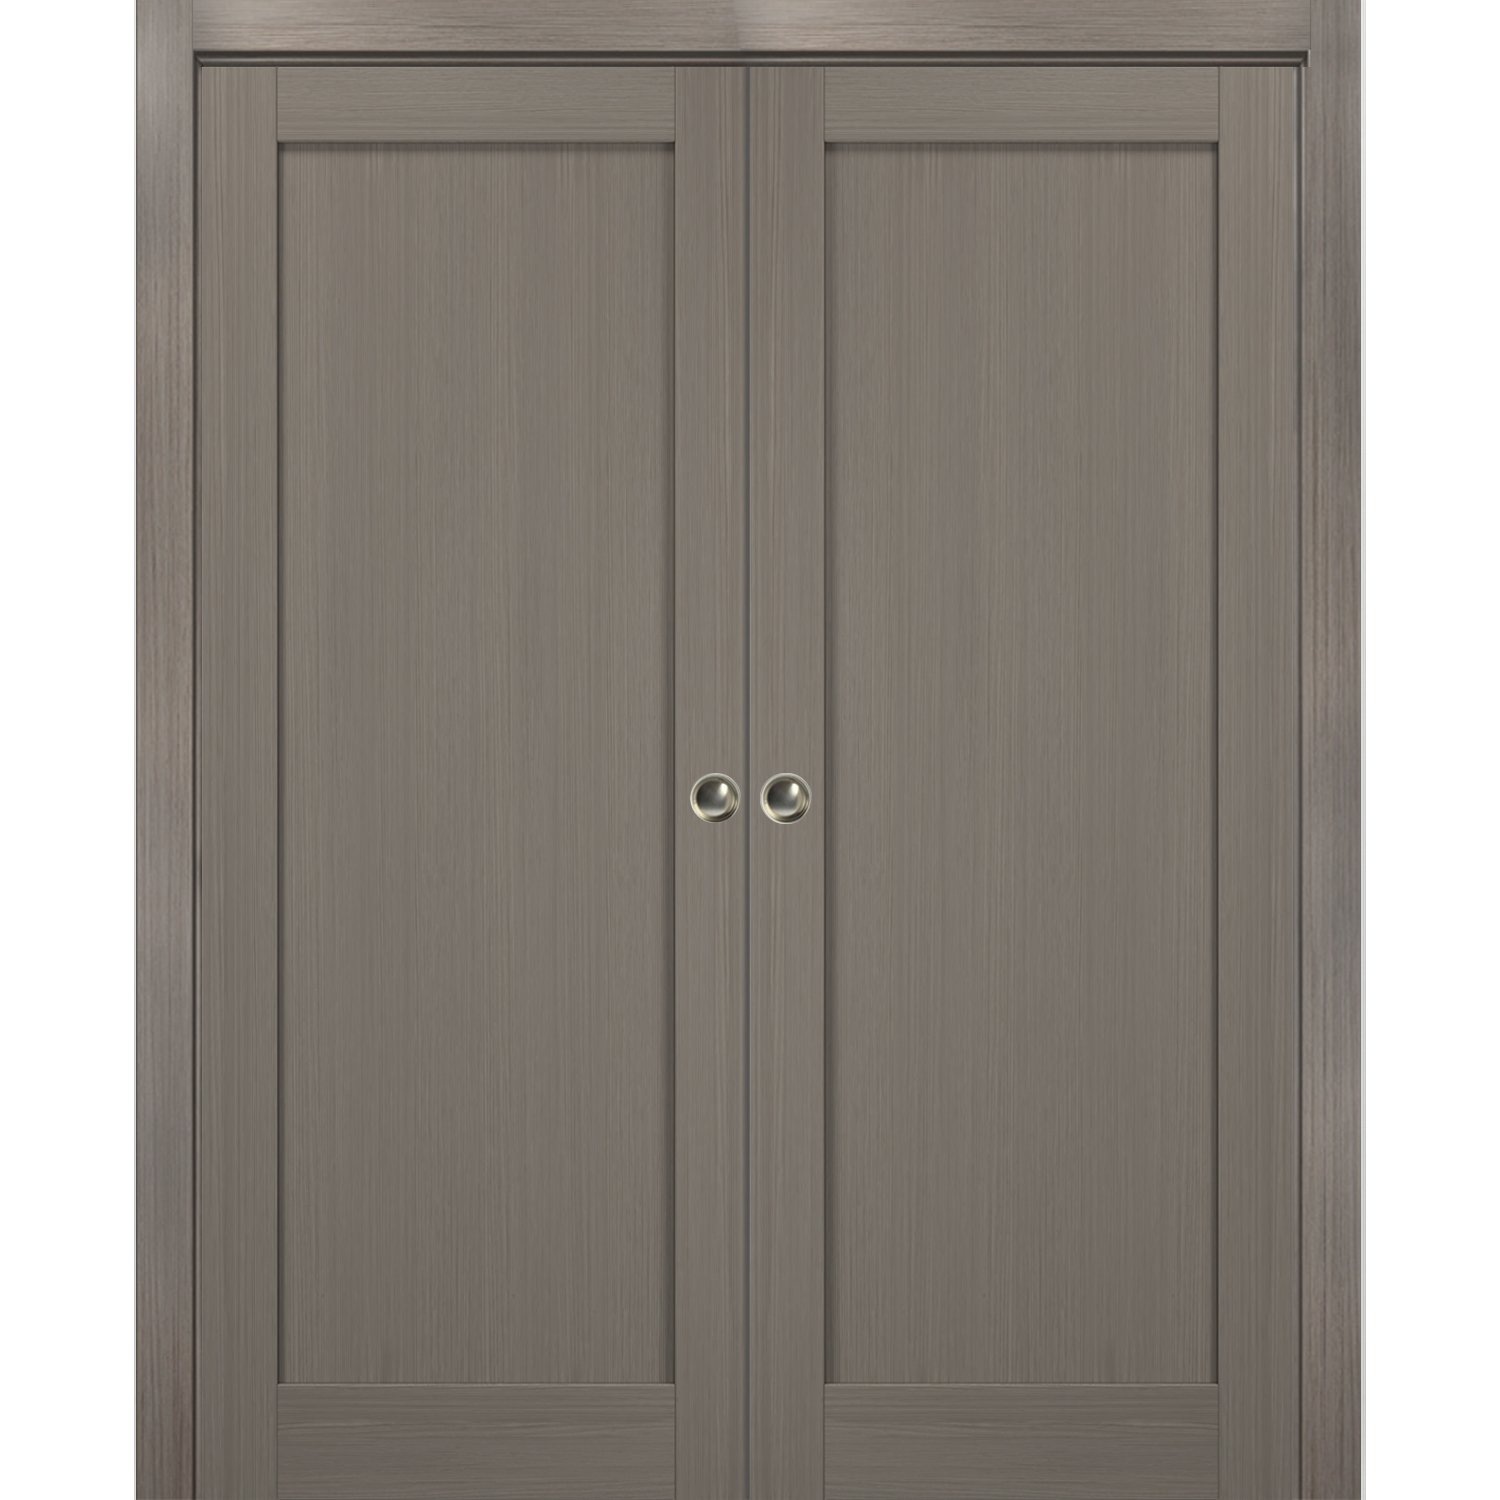 French Double Pocket Doors 60 X 96 With